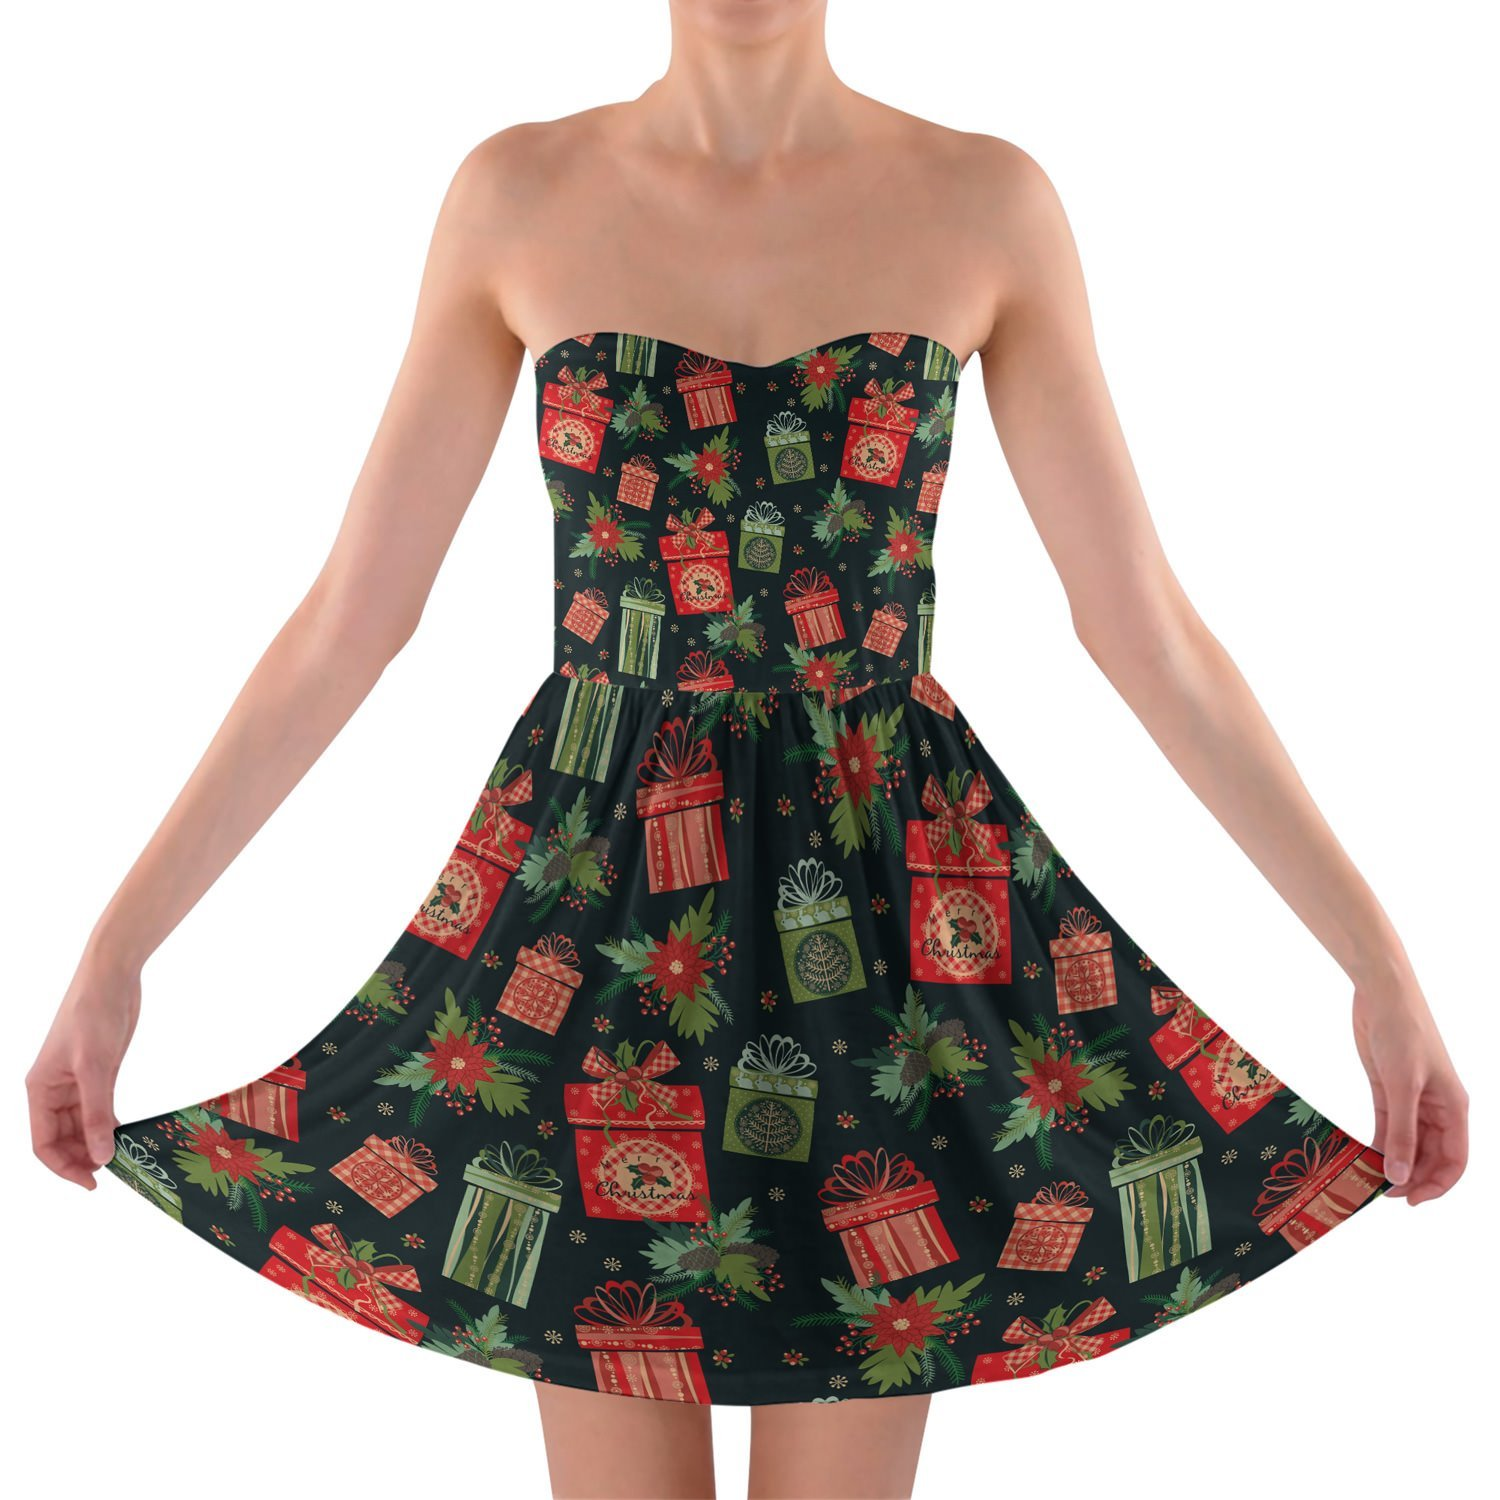 Merry Christmas Gifts Strapless Bra Top Dress